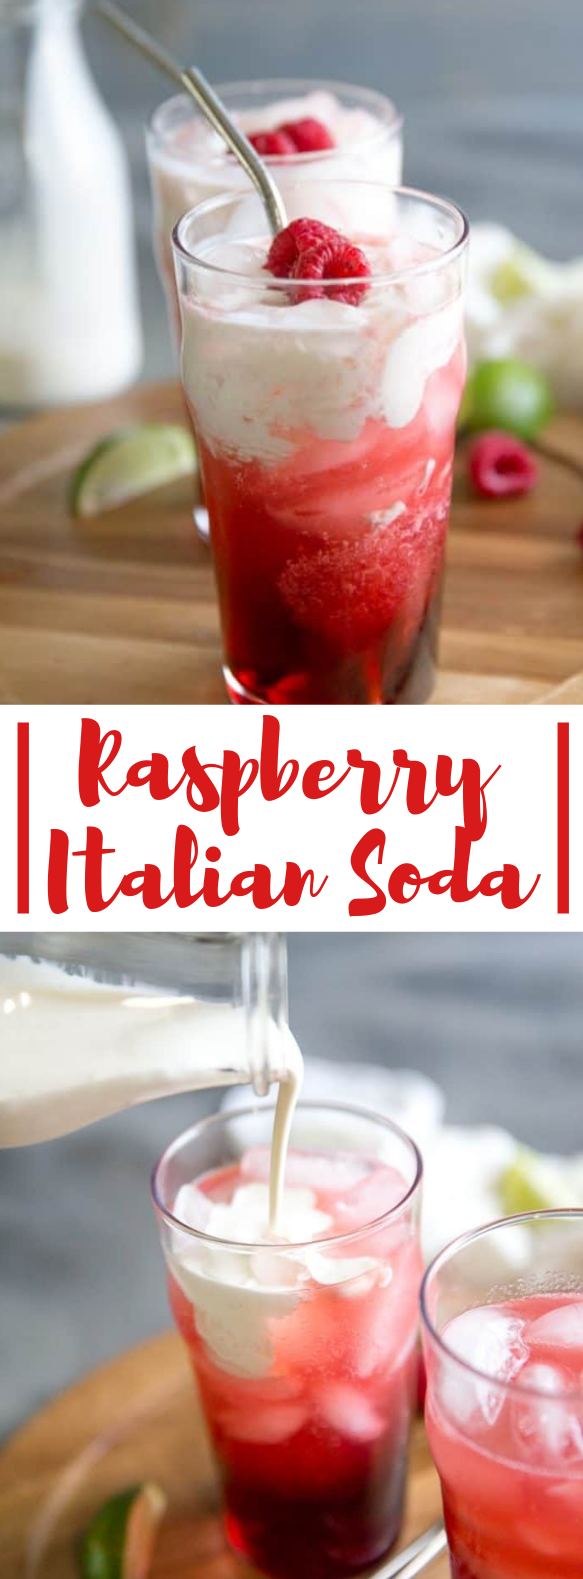 RASPBERRY ITALIAN SODA #drinks #cocktails